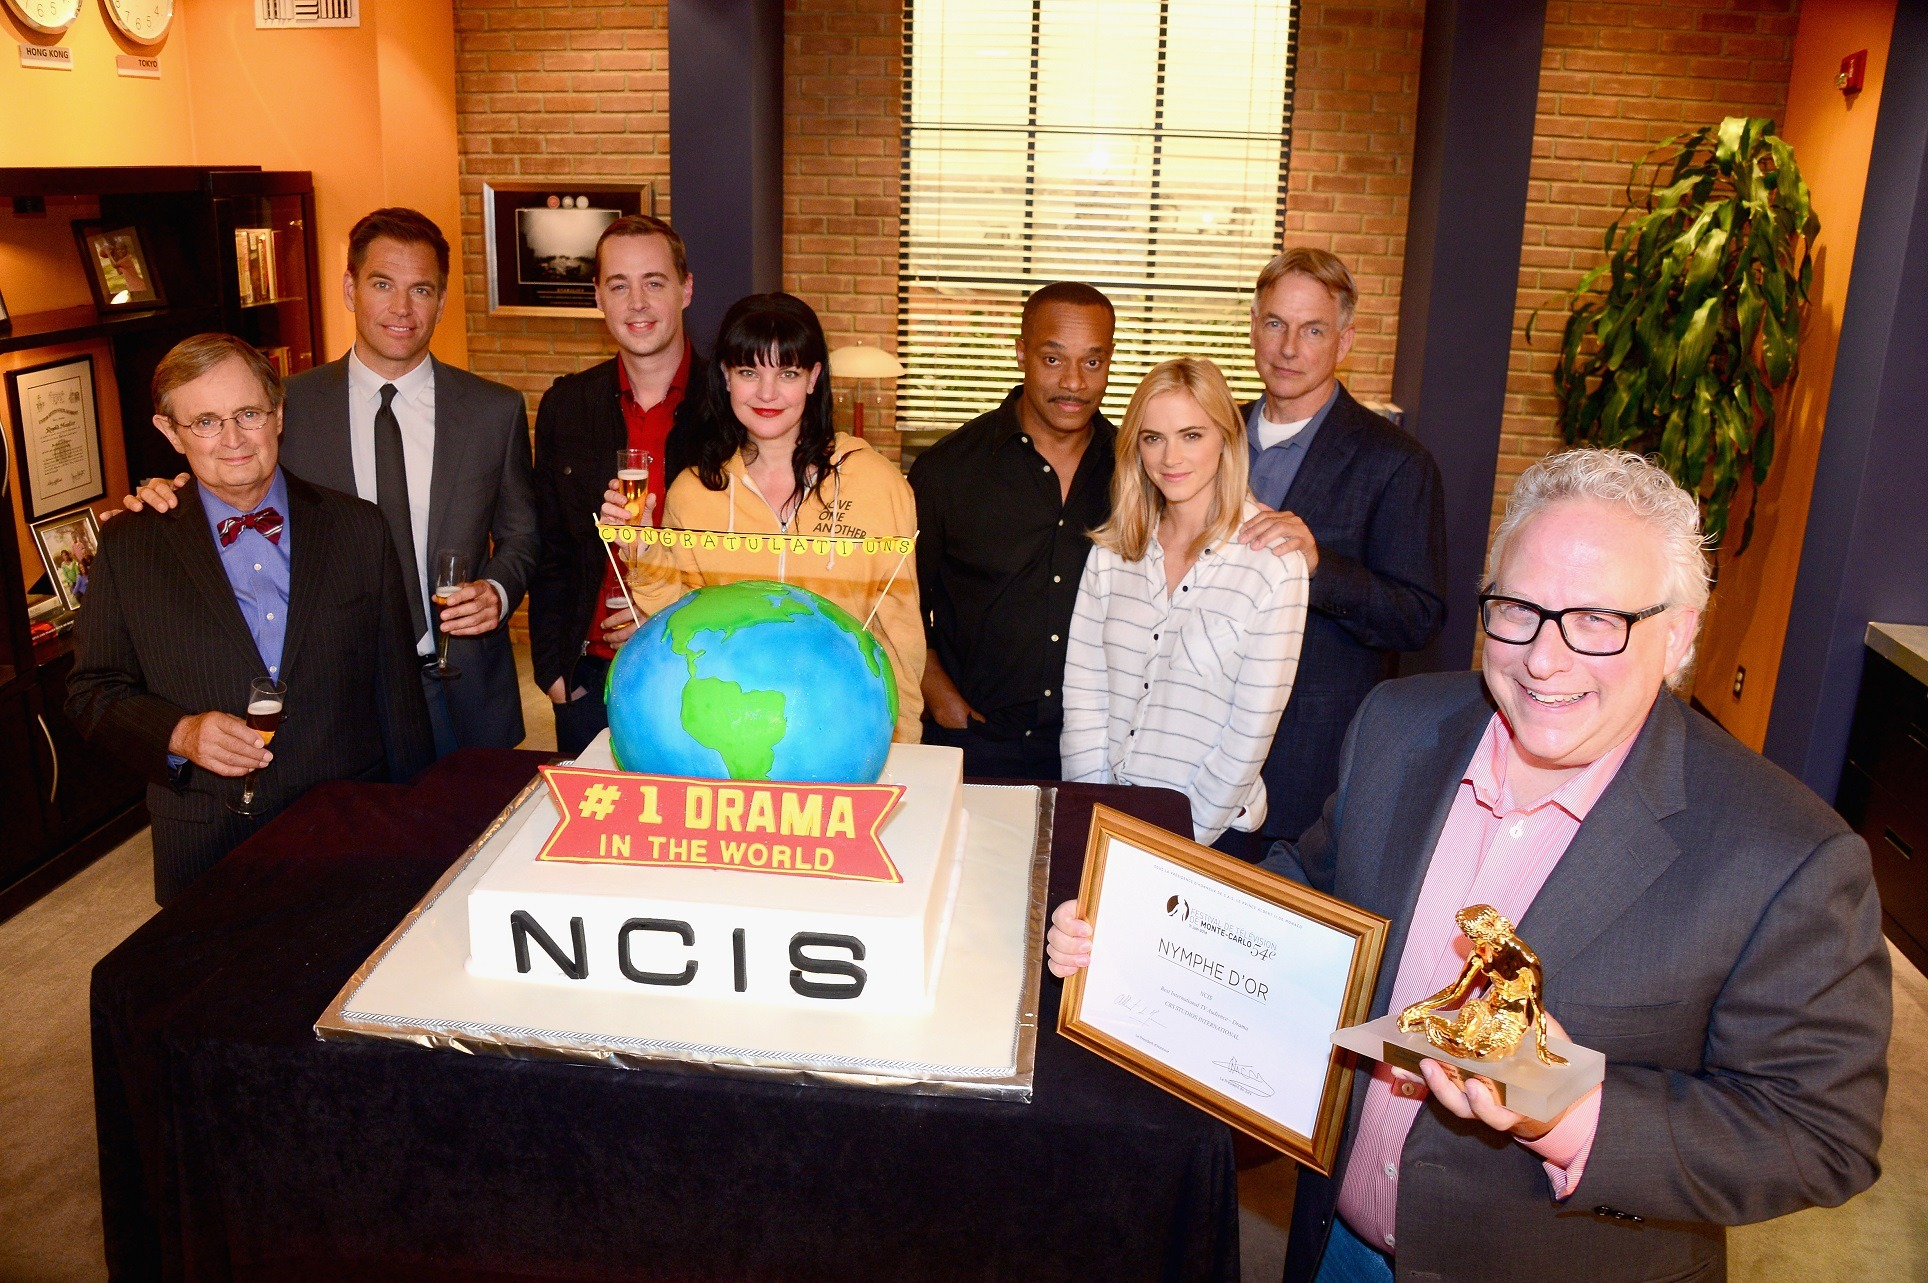 David McCallum (left) and the cast of NCIS.